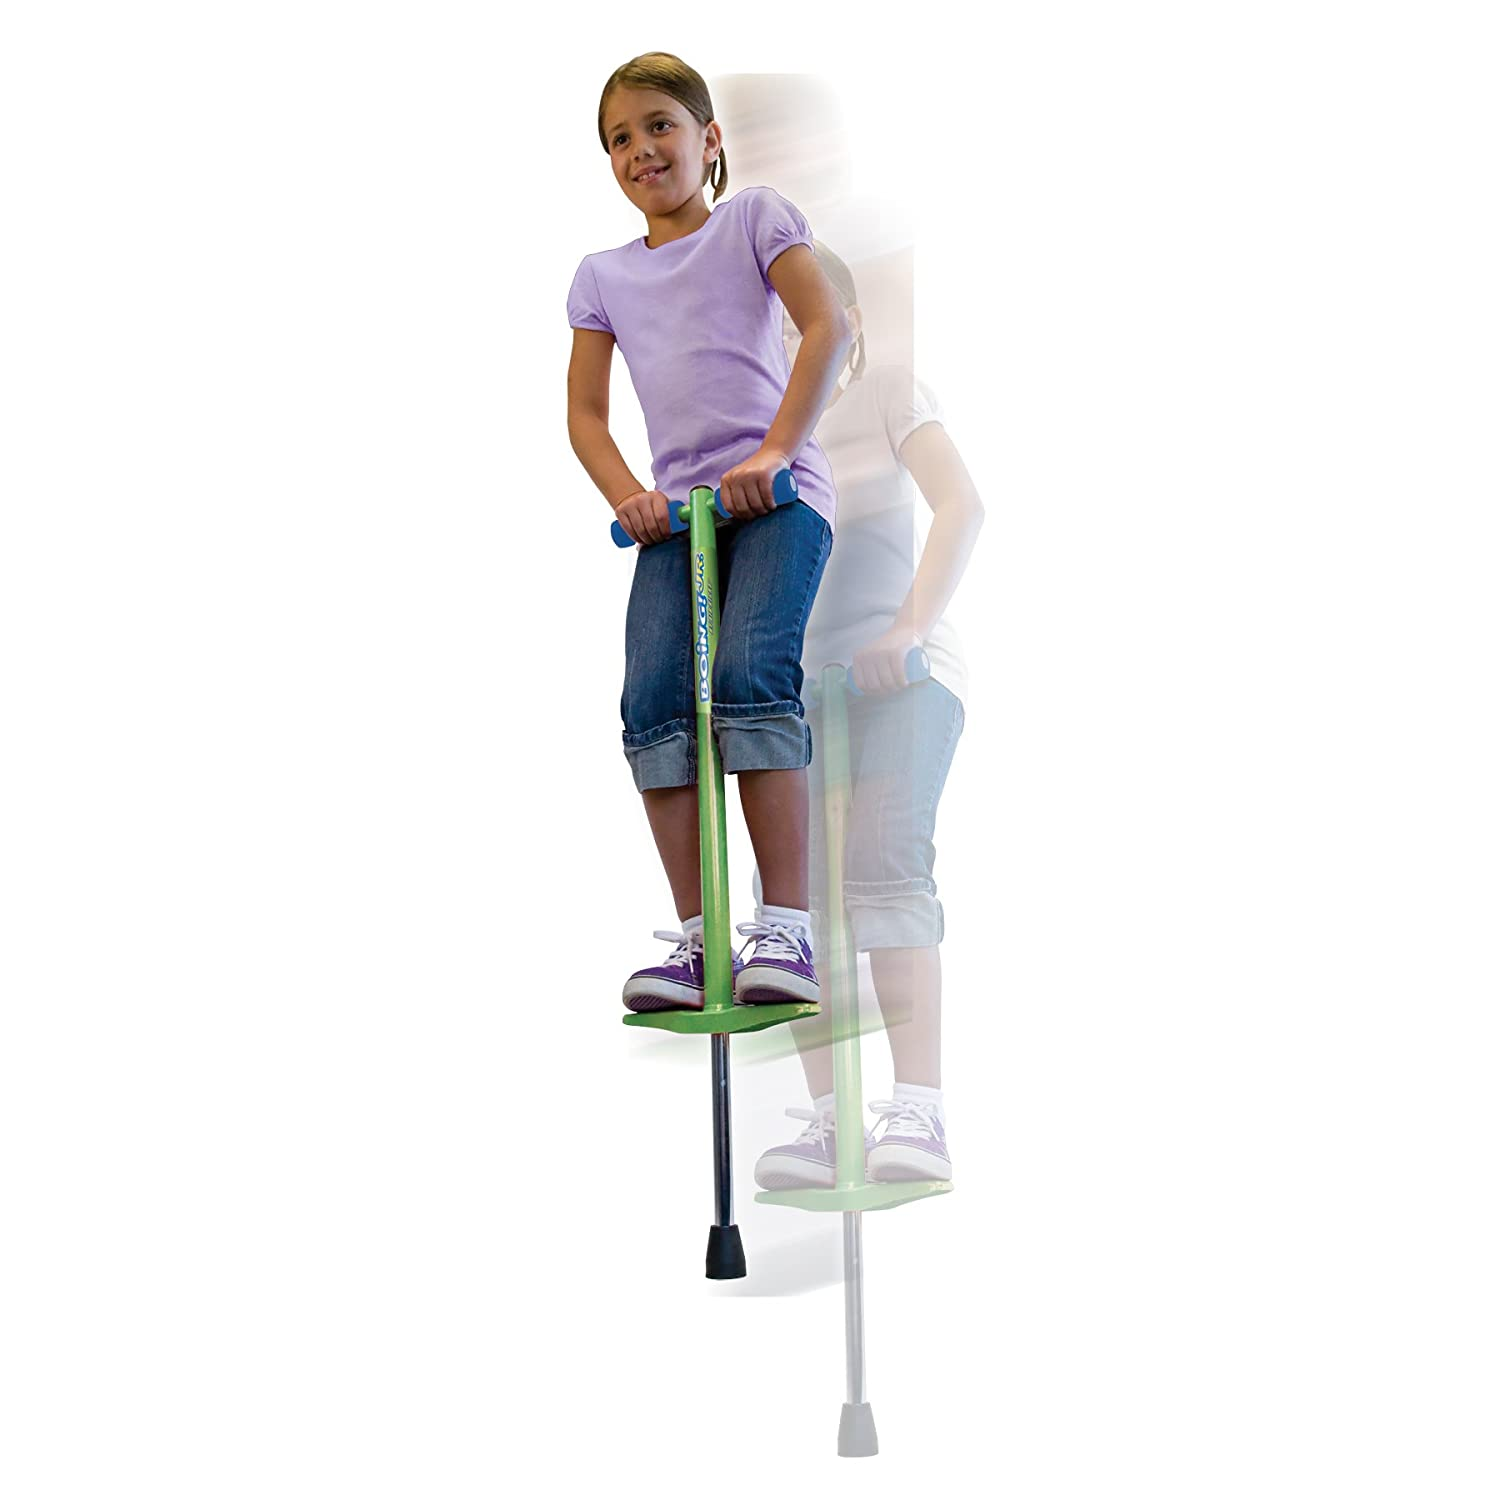 Jumparoo BOING! JR. Pogo Stick by Air Kicks, Small for Kids 40 to 80 Lbs. (18-36 kgs)